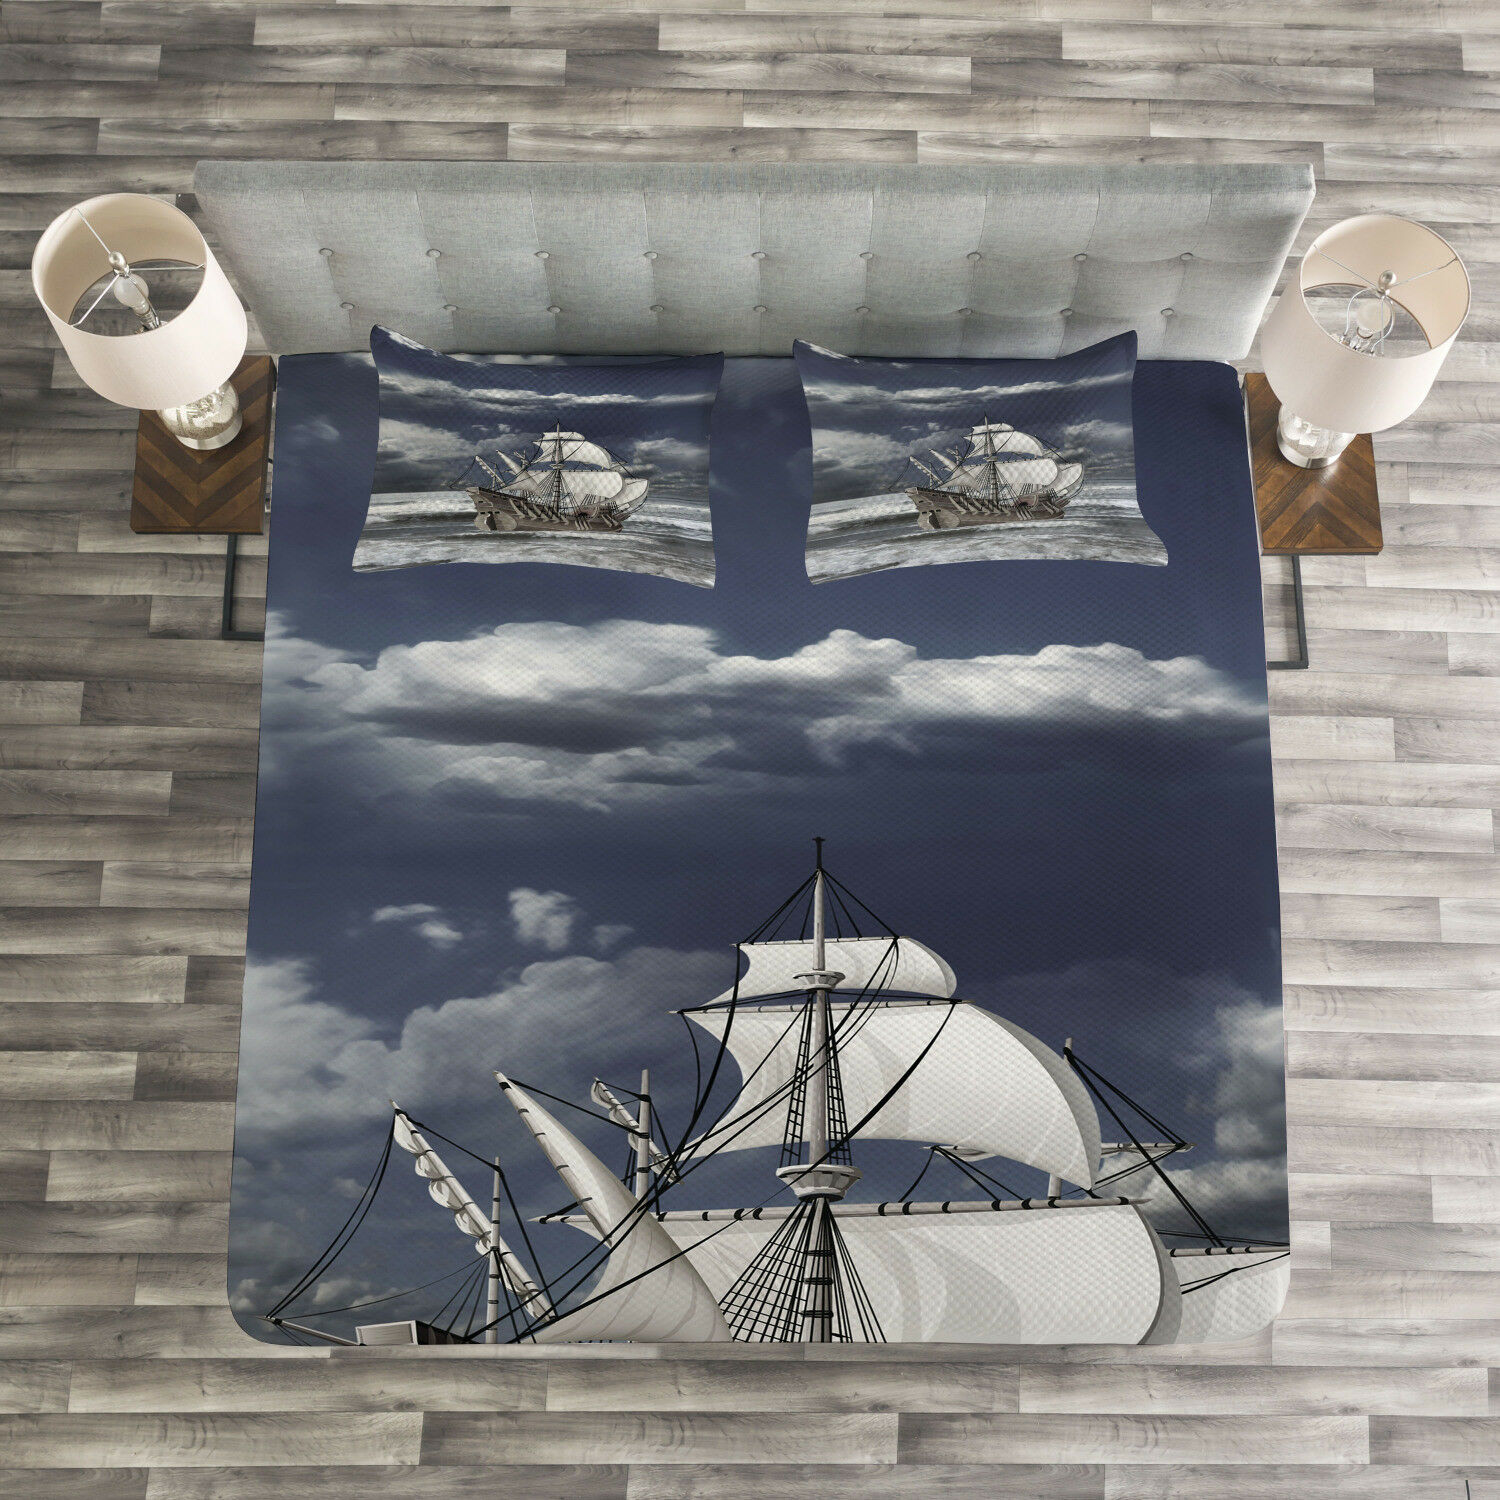 Grey Quilted Bedspread & Pillow Shams Set, Caribbean Pirates Ship Print